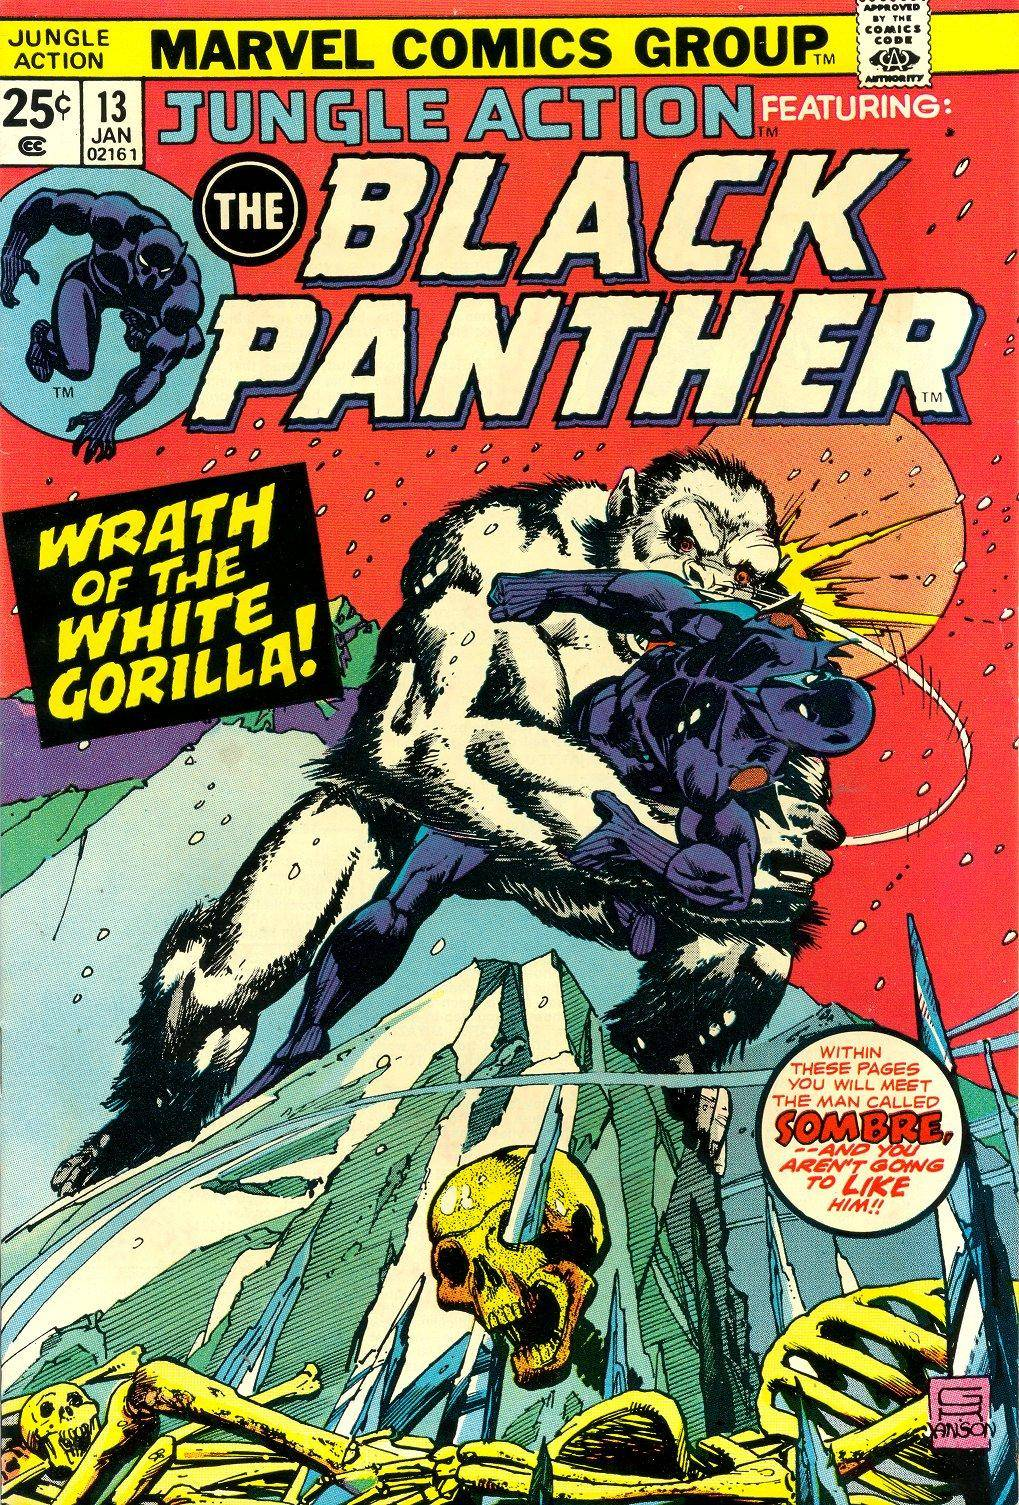 Jungle Action v2 013 featuring Black Panther